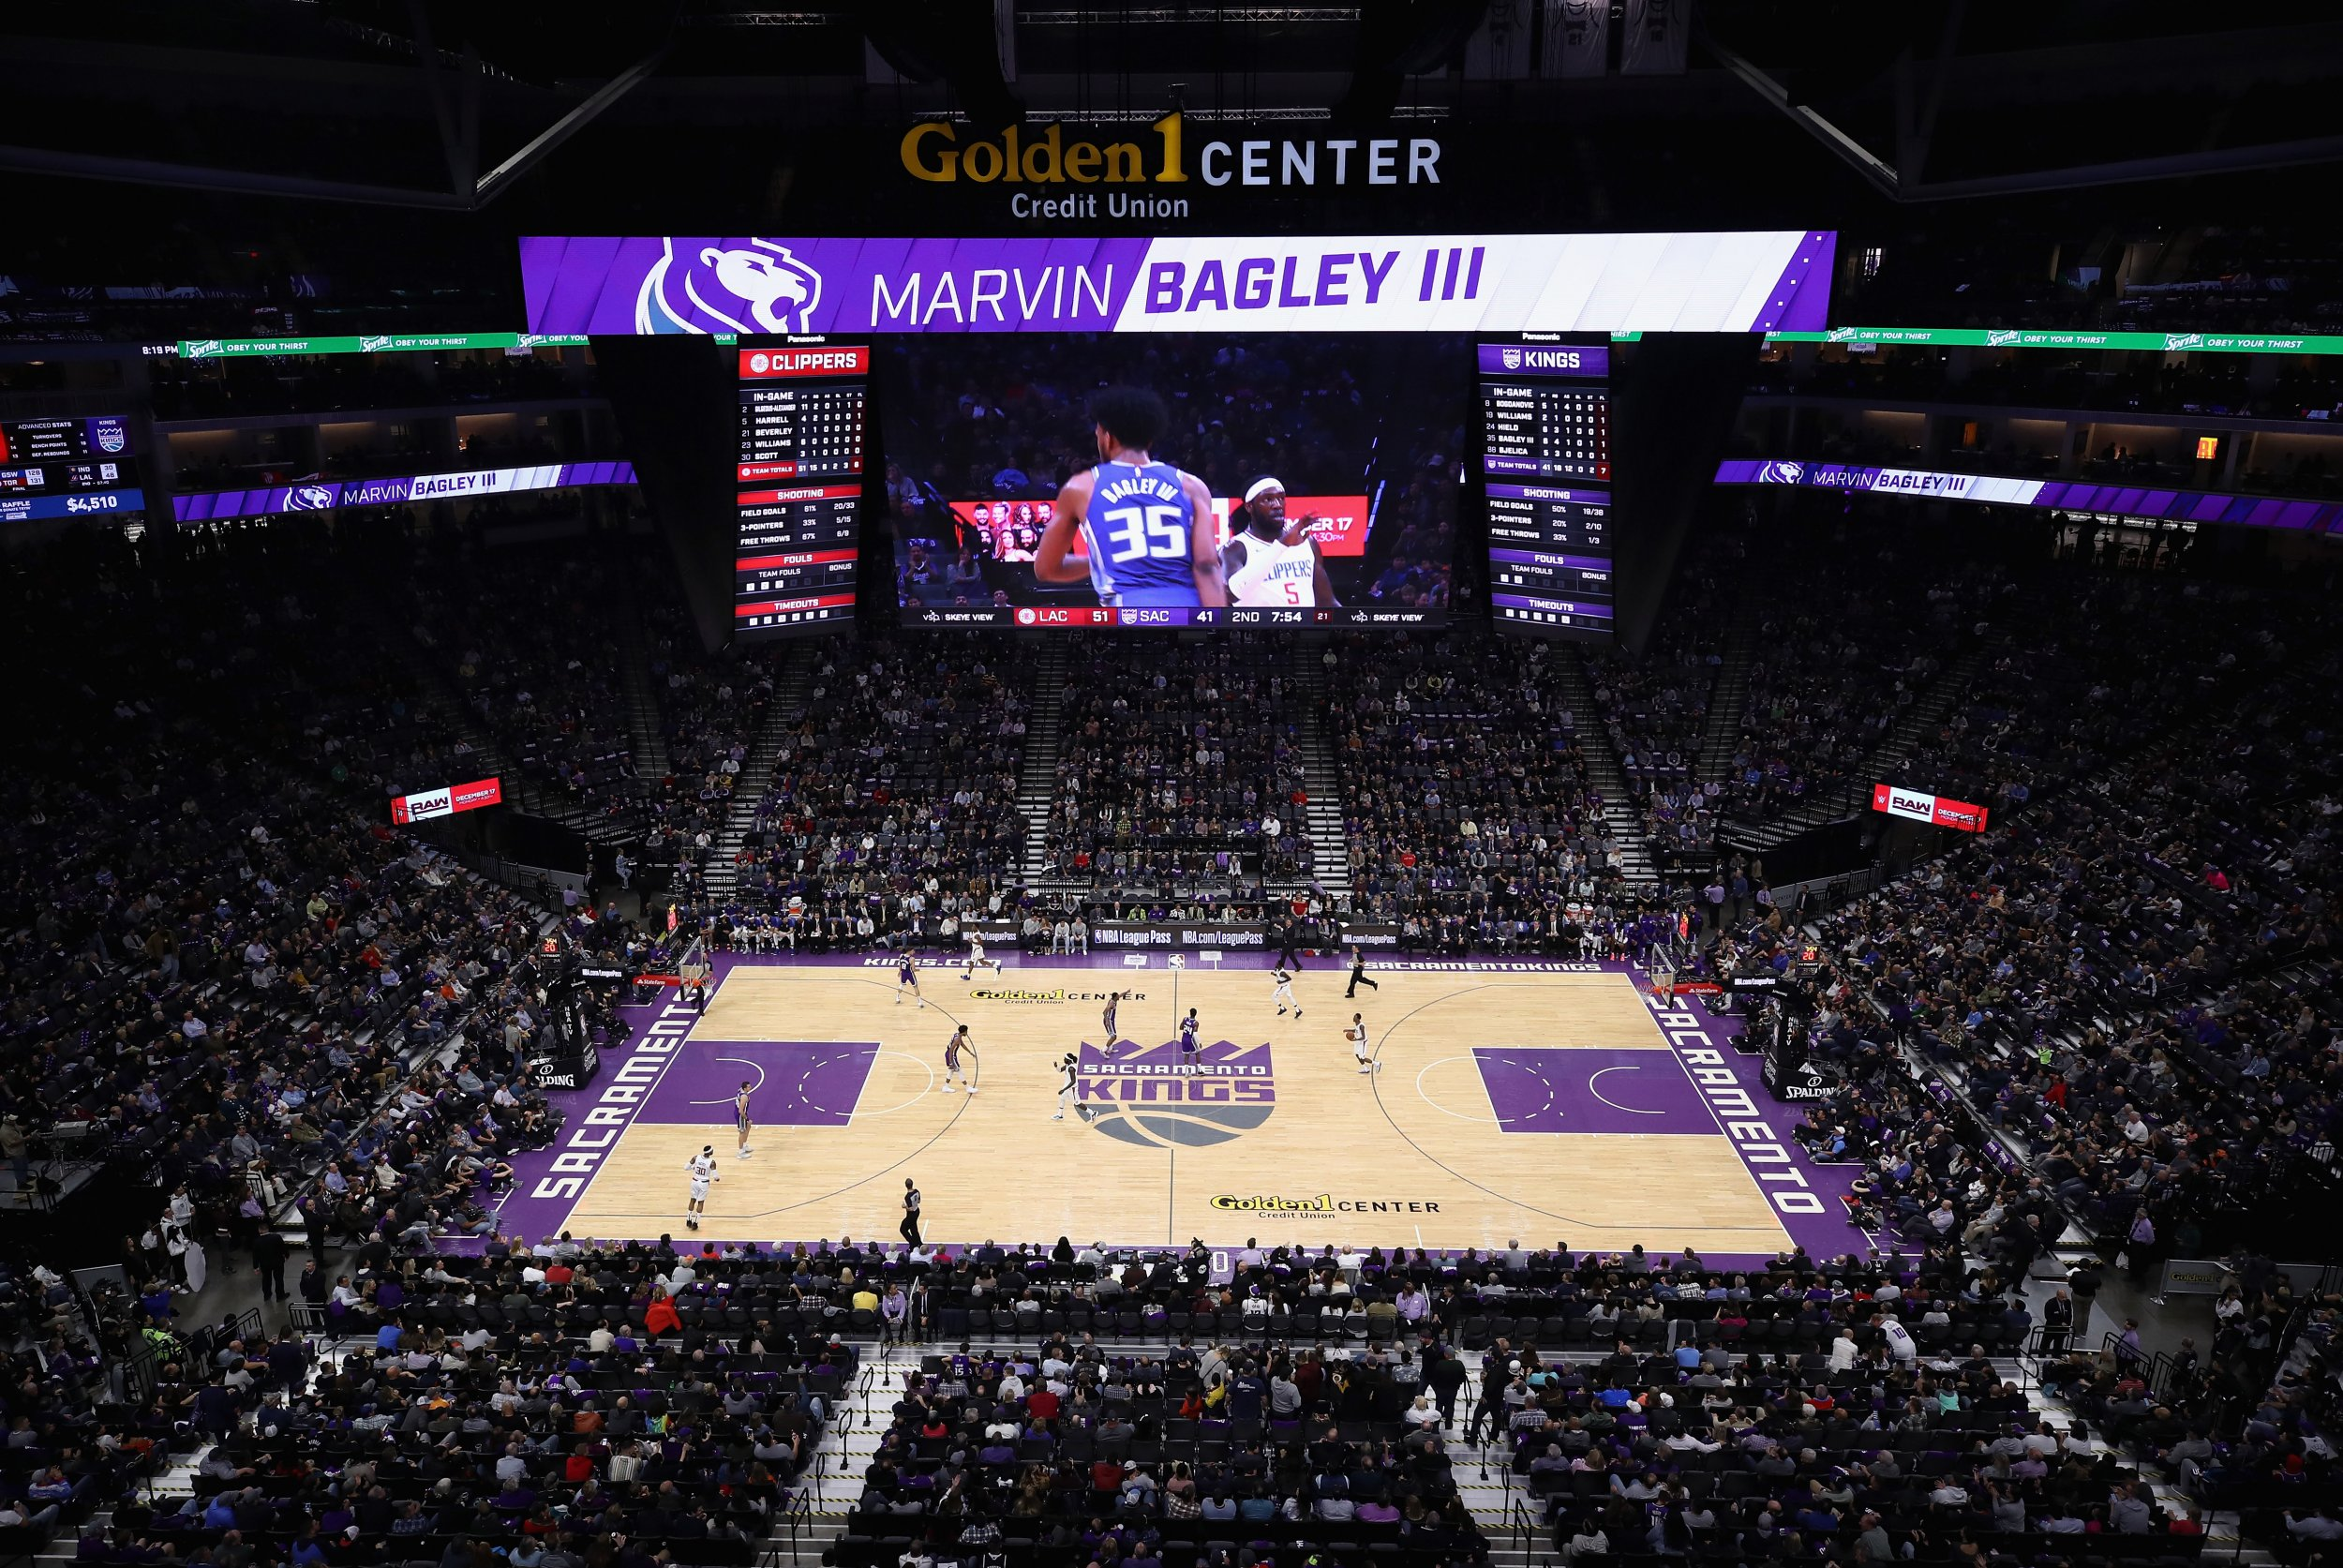 Golden 1 Center, Sacramento Kings